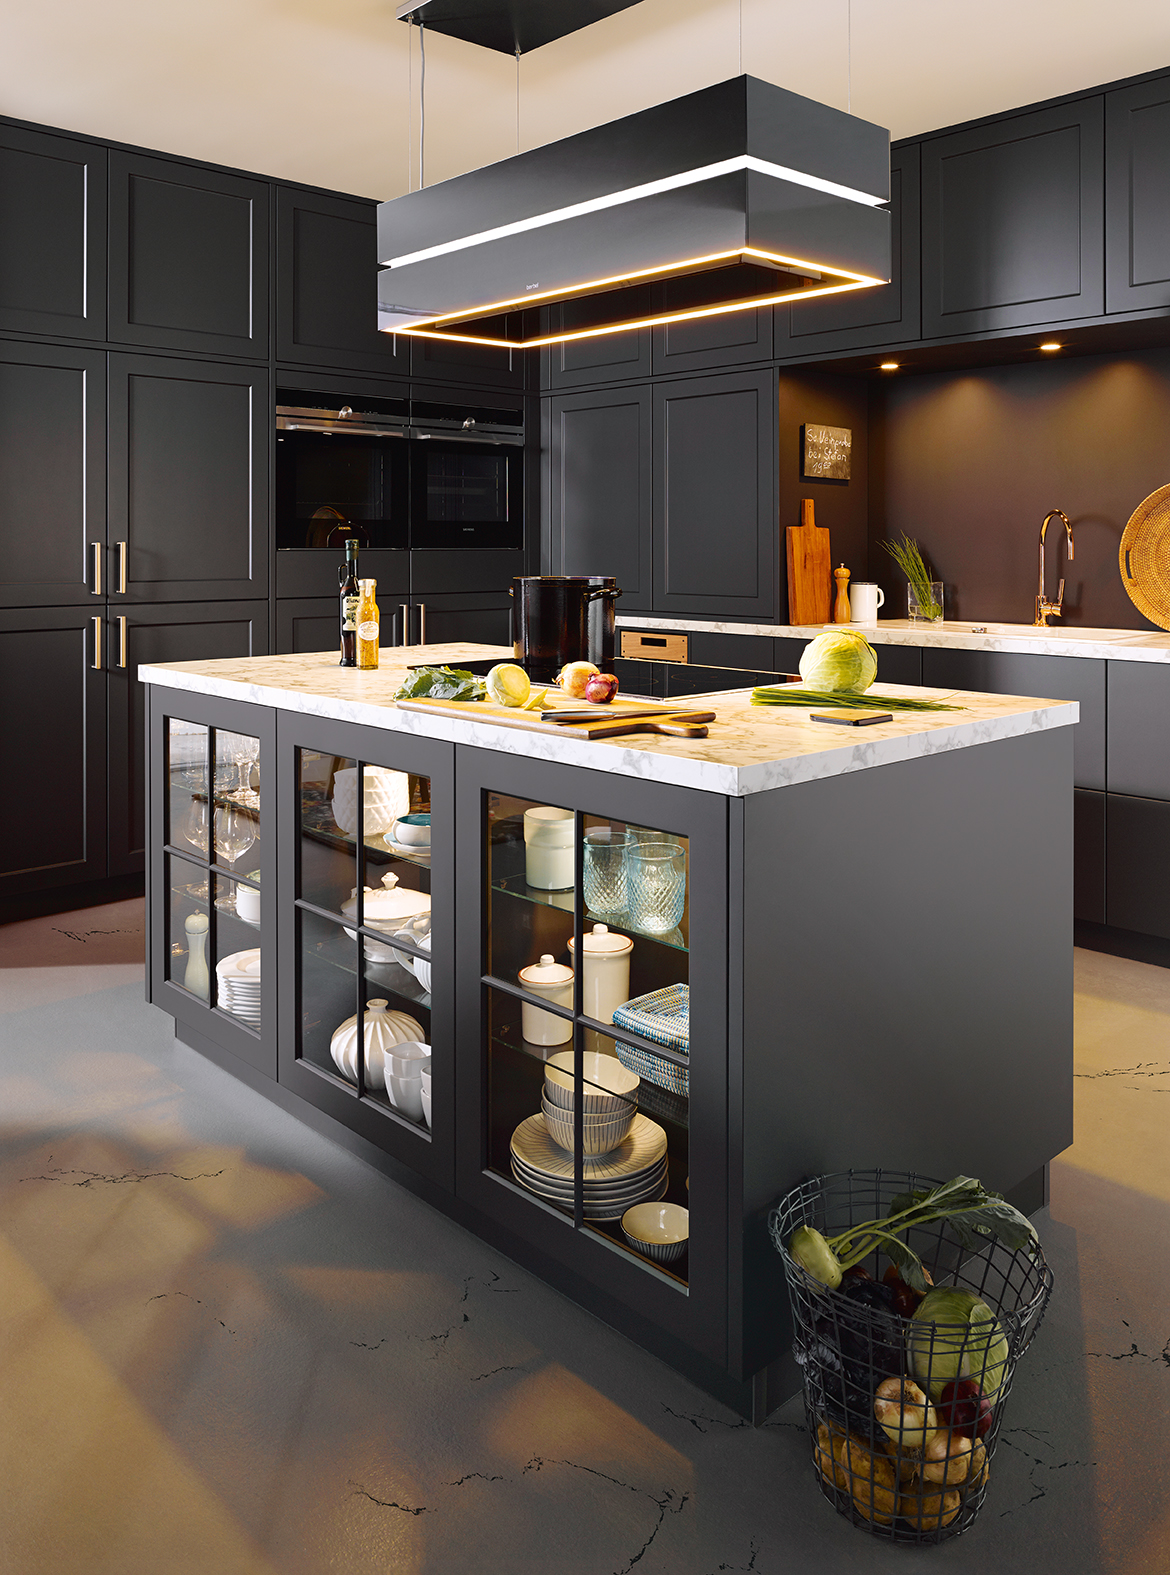 schuller vienna kitchen schuller by artisan interiors. Black Bedroom Furniture Sets. Home Design Ideas